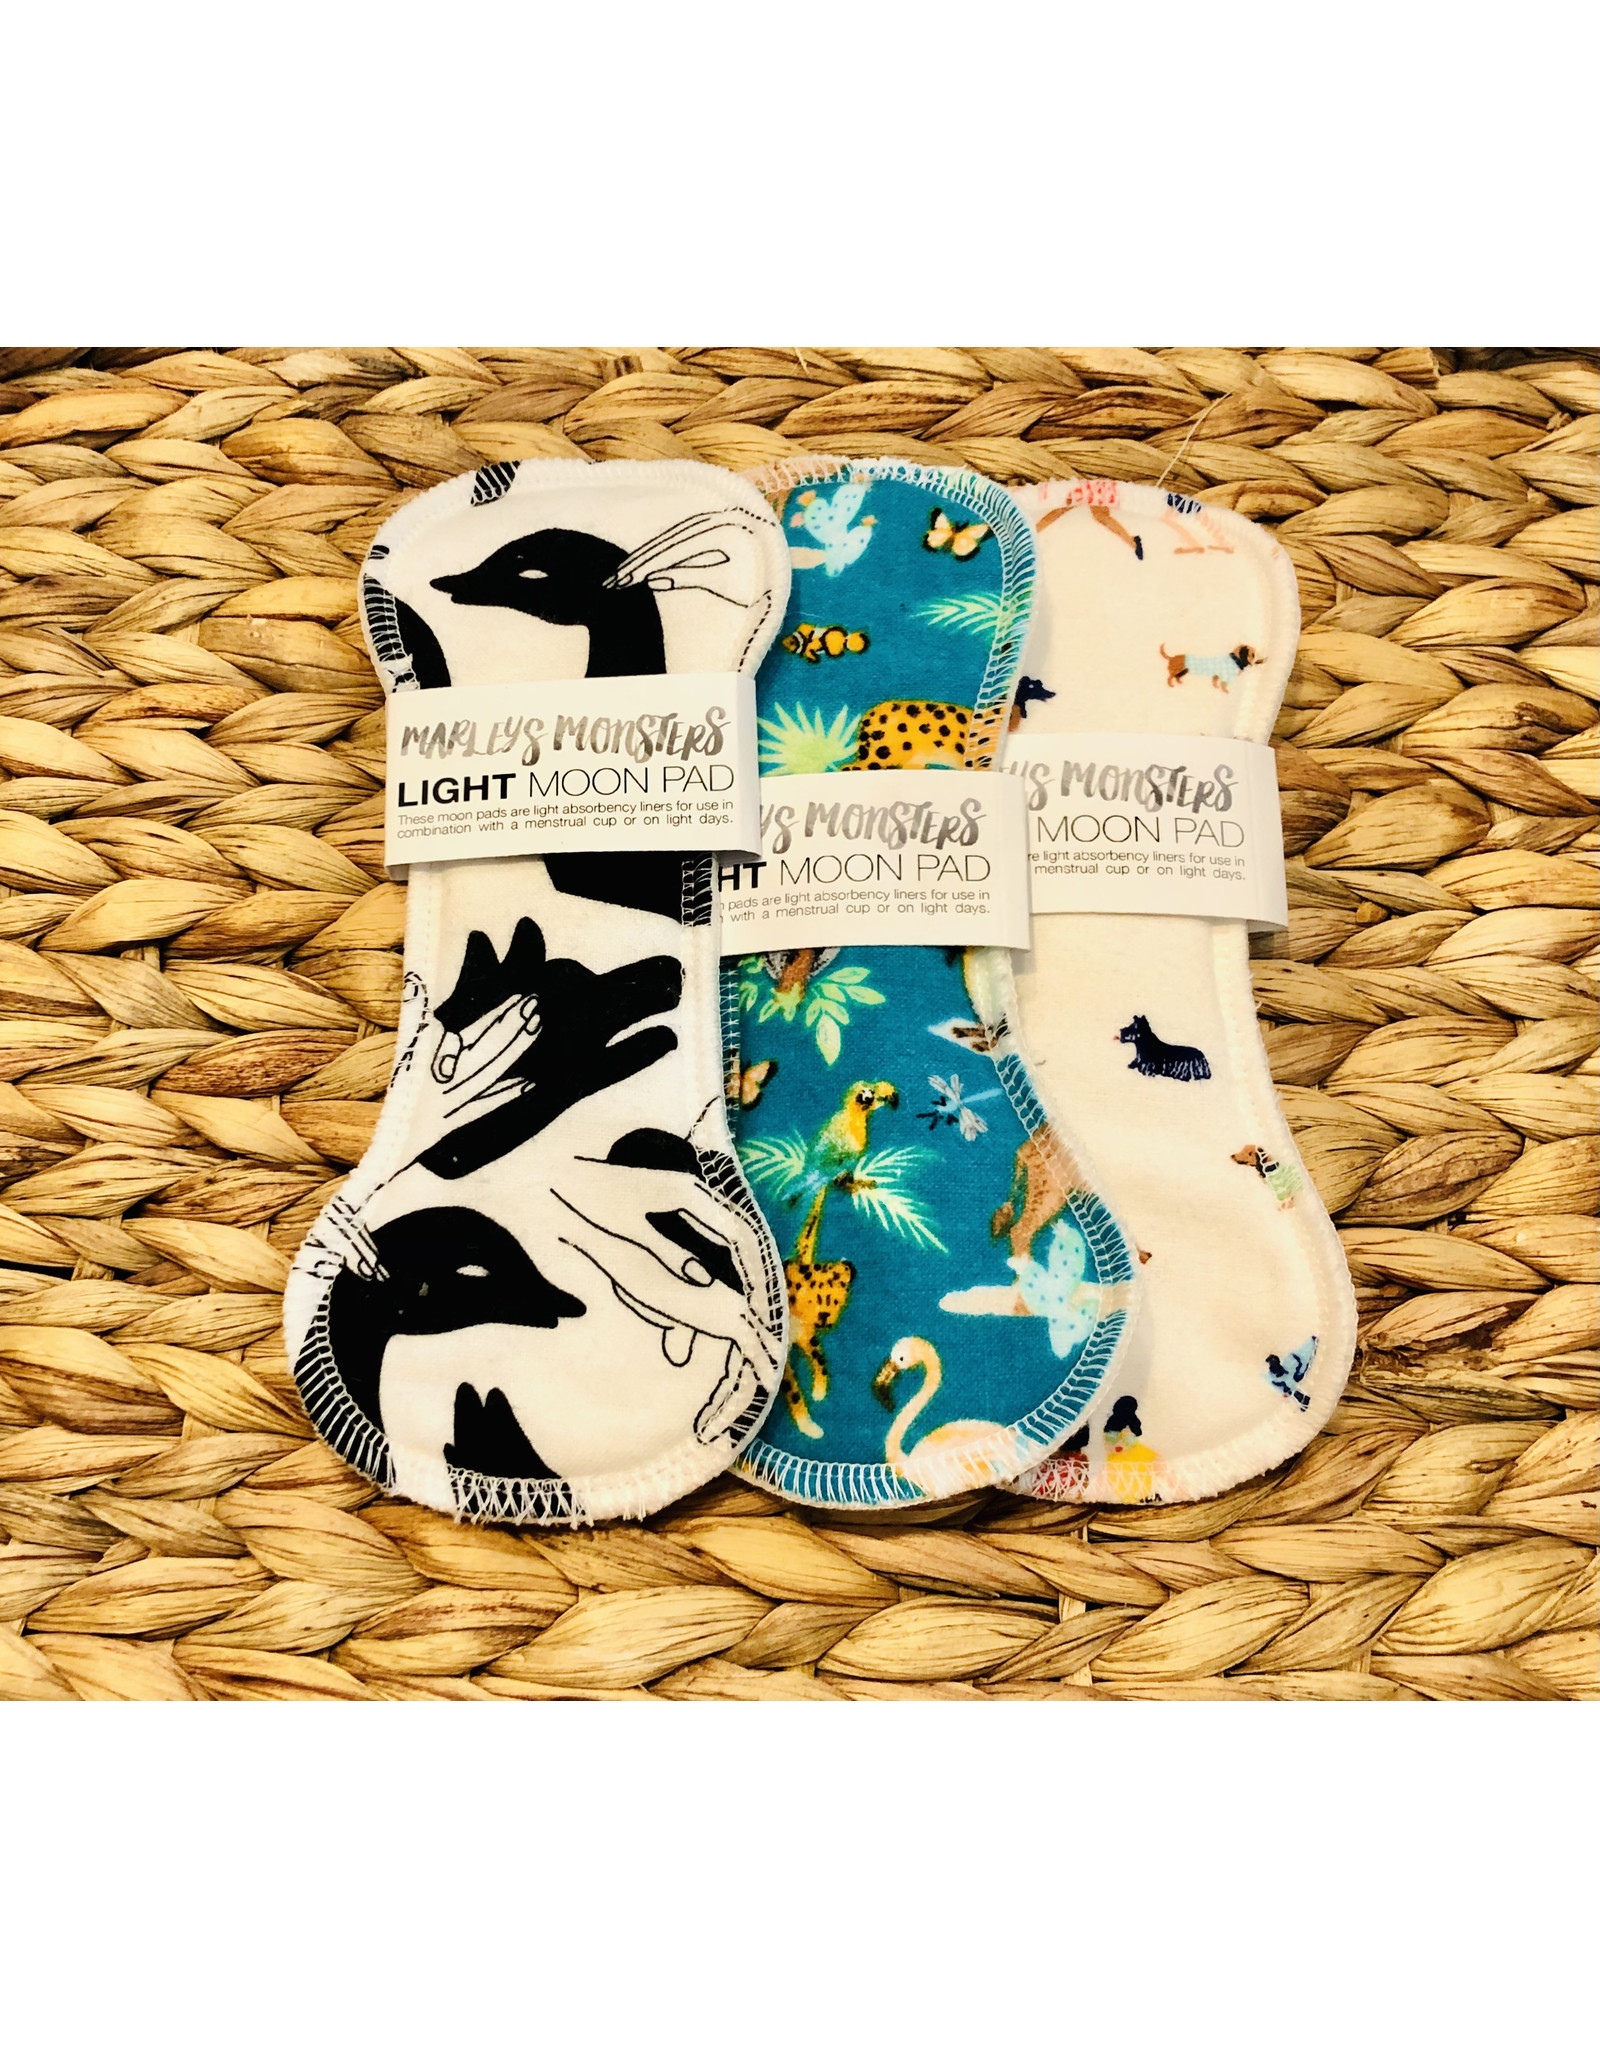 Marley's Monsters Moon Pads